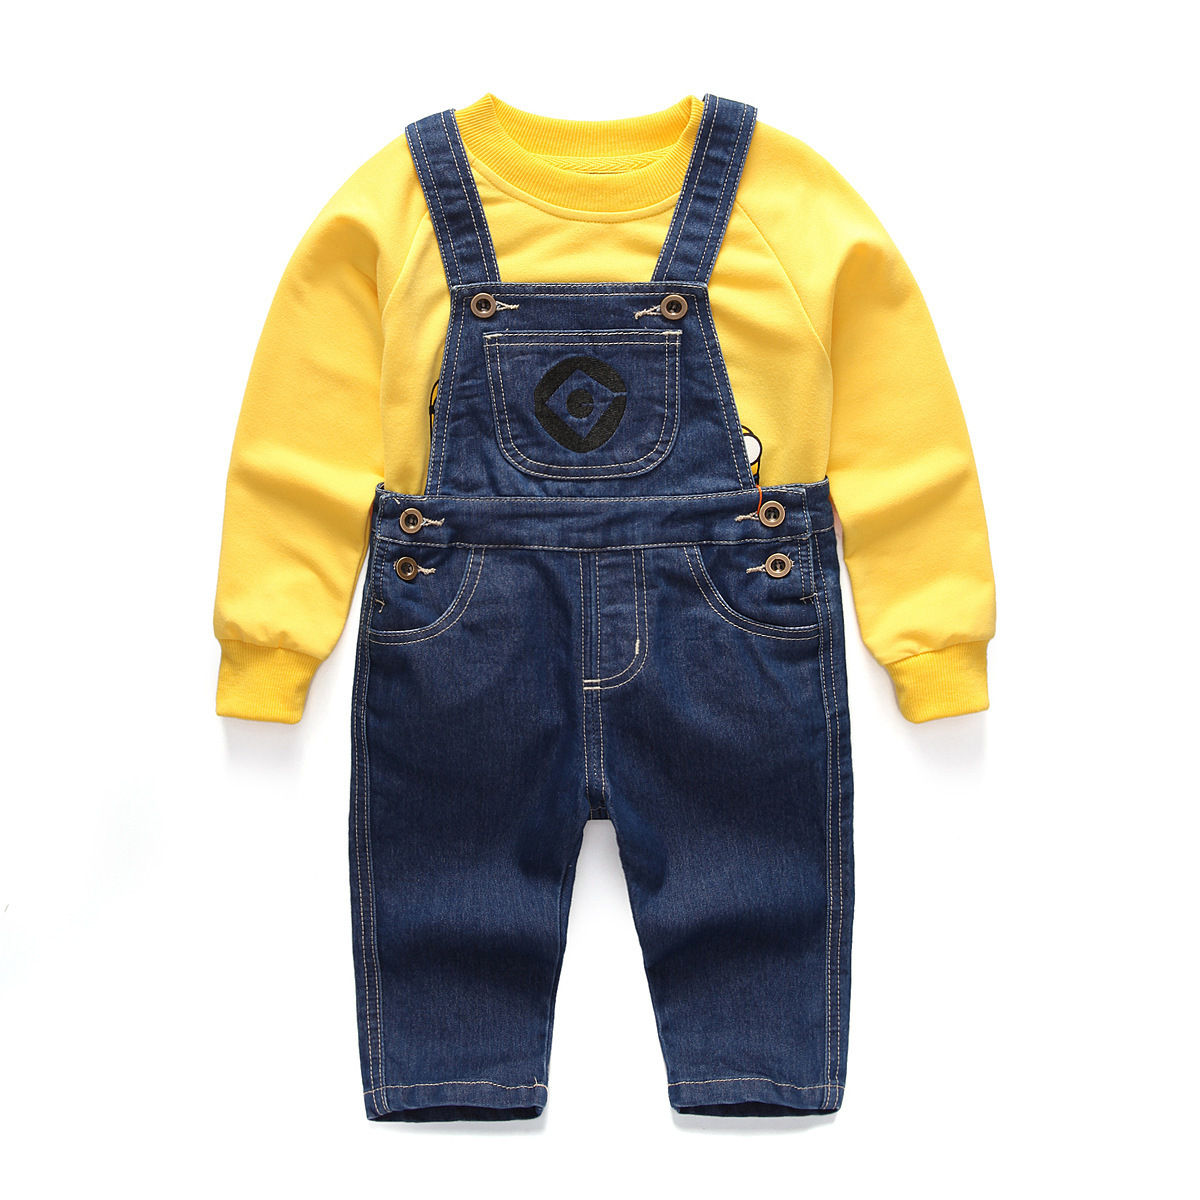 Baby Boy Suit Cartoon Yellow People Children's Pants Wear Sweater Minions Trousers Spring Summer Children Clothing Kids Clothes 2017 new cartoon pants brand baby cotton embroider pants baby trousers kid wear baby fashion models spring and autumn 0 4 years